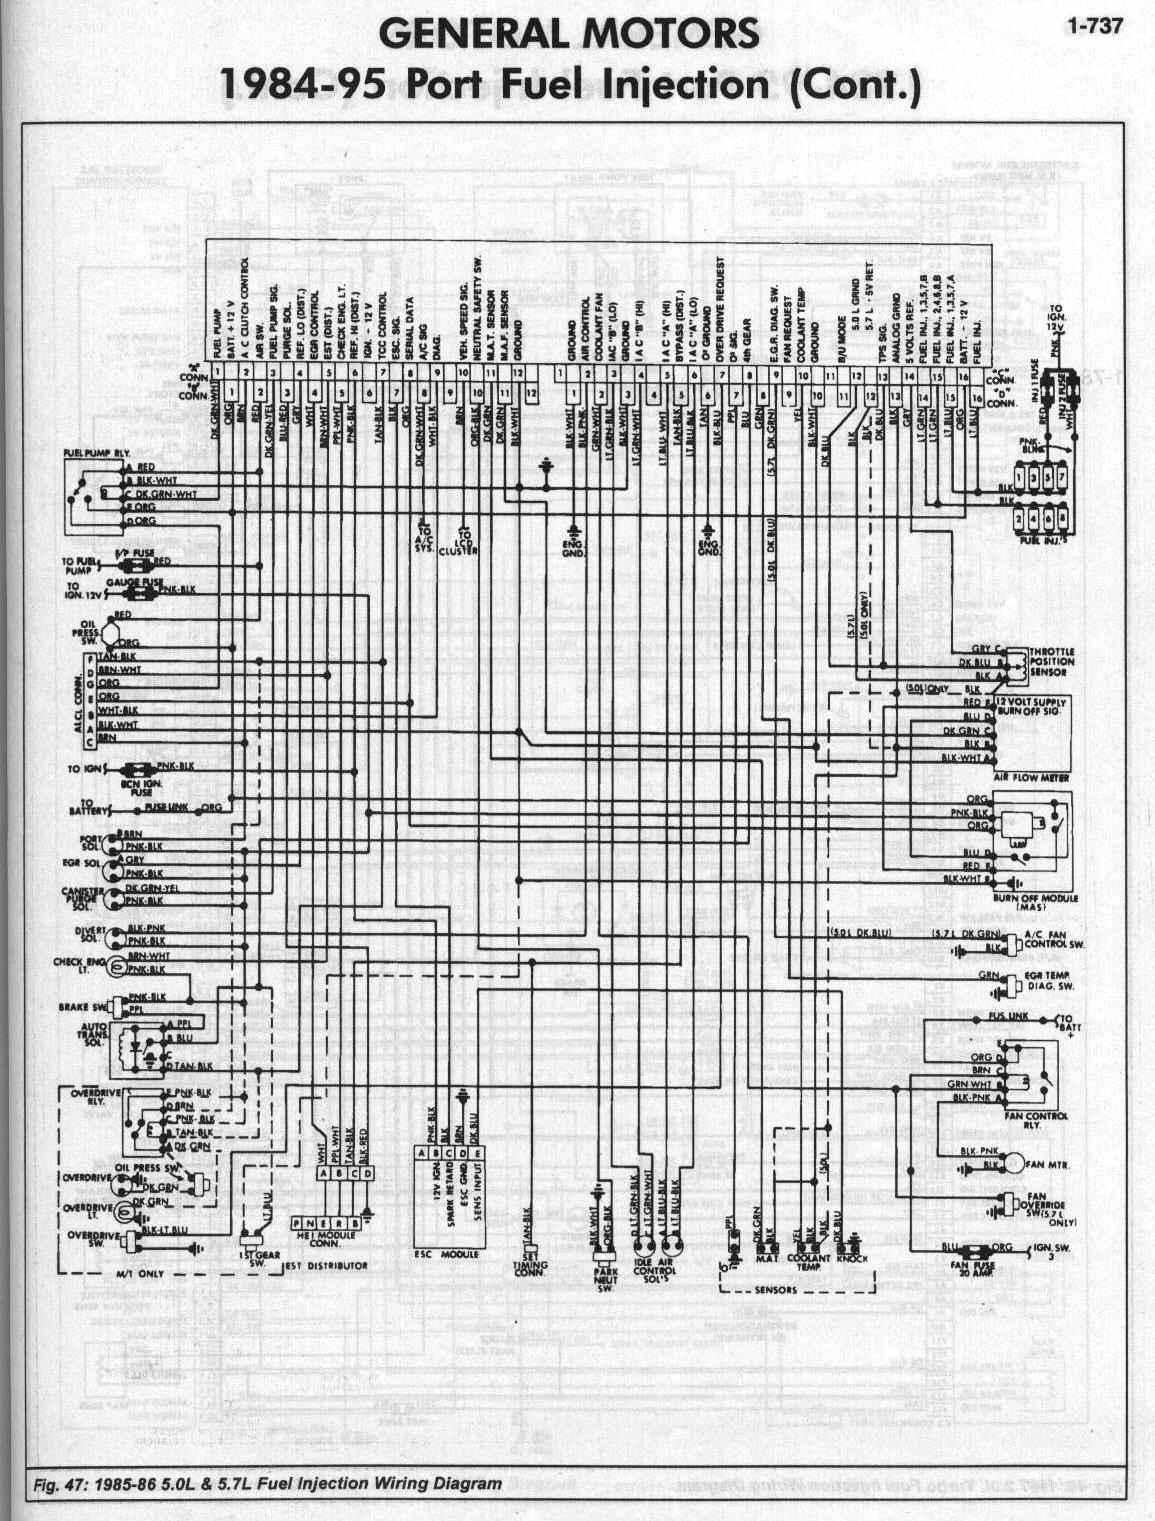 C4 Corvette Wiring Diagram Quick Start Guide Of Radio 89 Simple Rh 39 Terranut Store For Sale